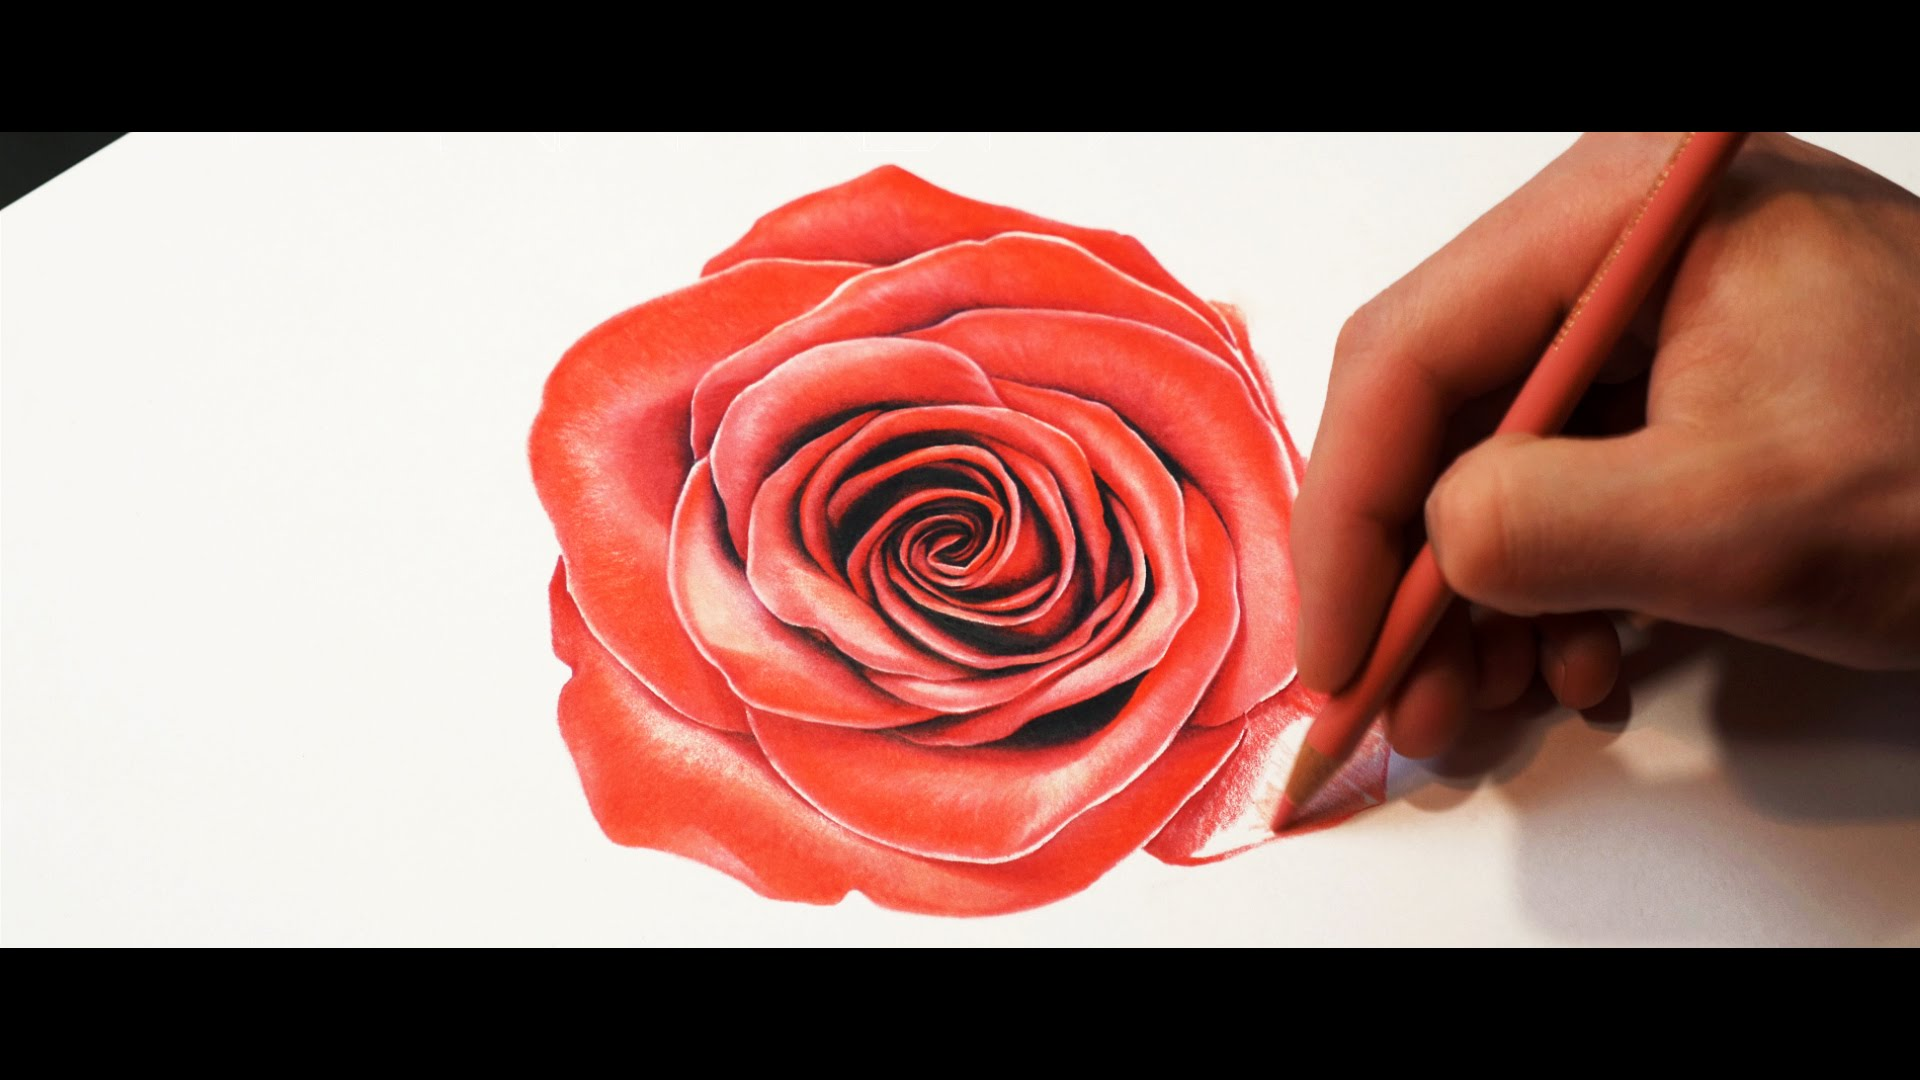 Drawn red rose color pencil YouTube Color Red Speed Rose